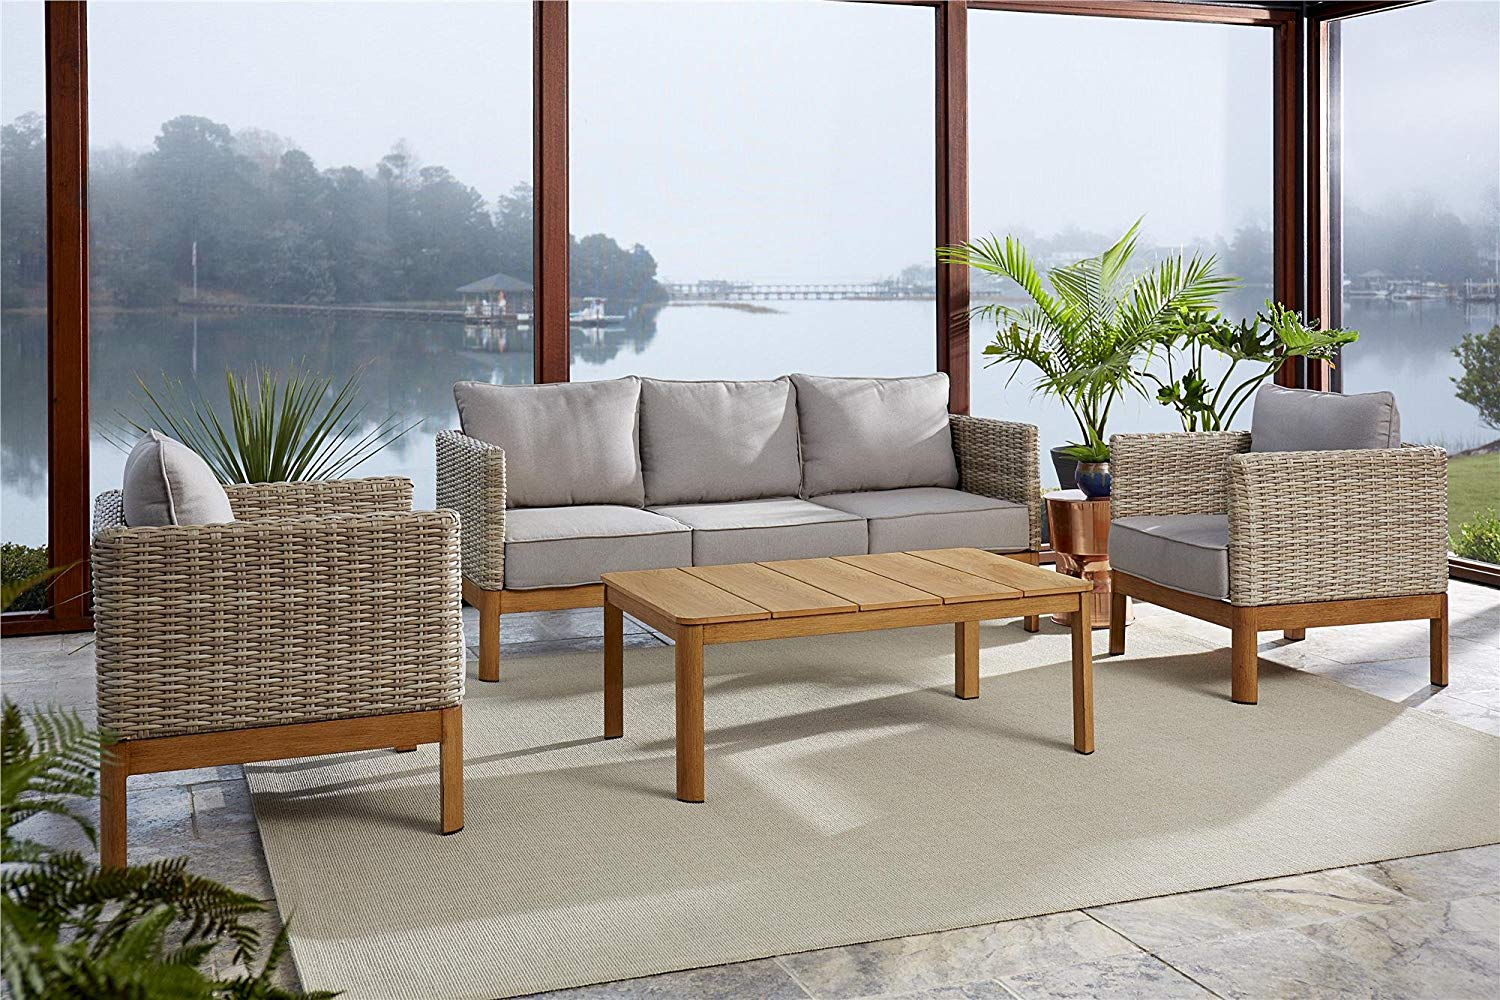 6fb8b5a91f81 Get Quotations · Cosco Outdoor Furniture Set, Coffee Table, Sofa, Chair  Set, 4 Piece,